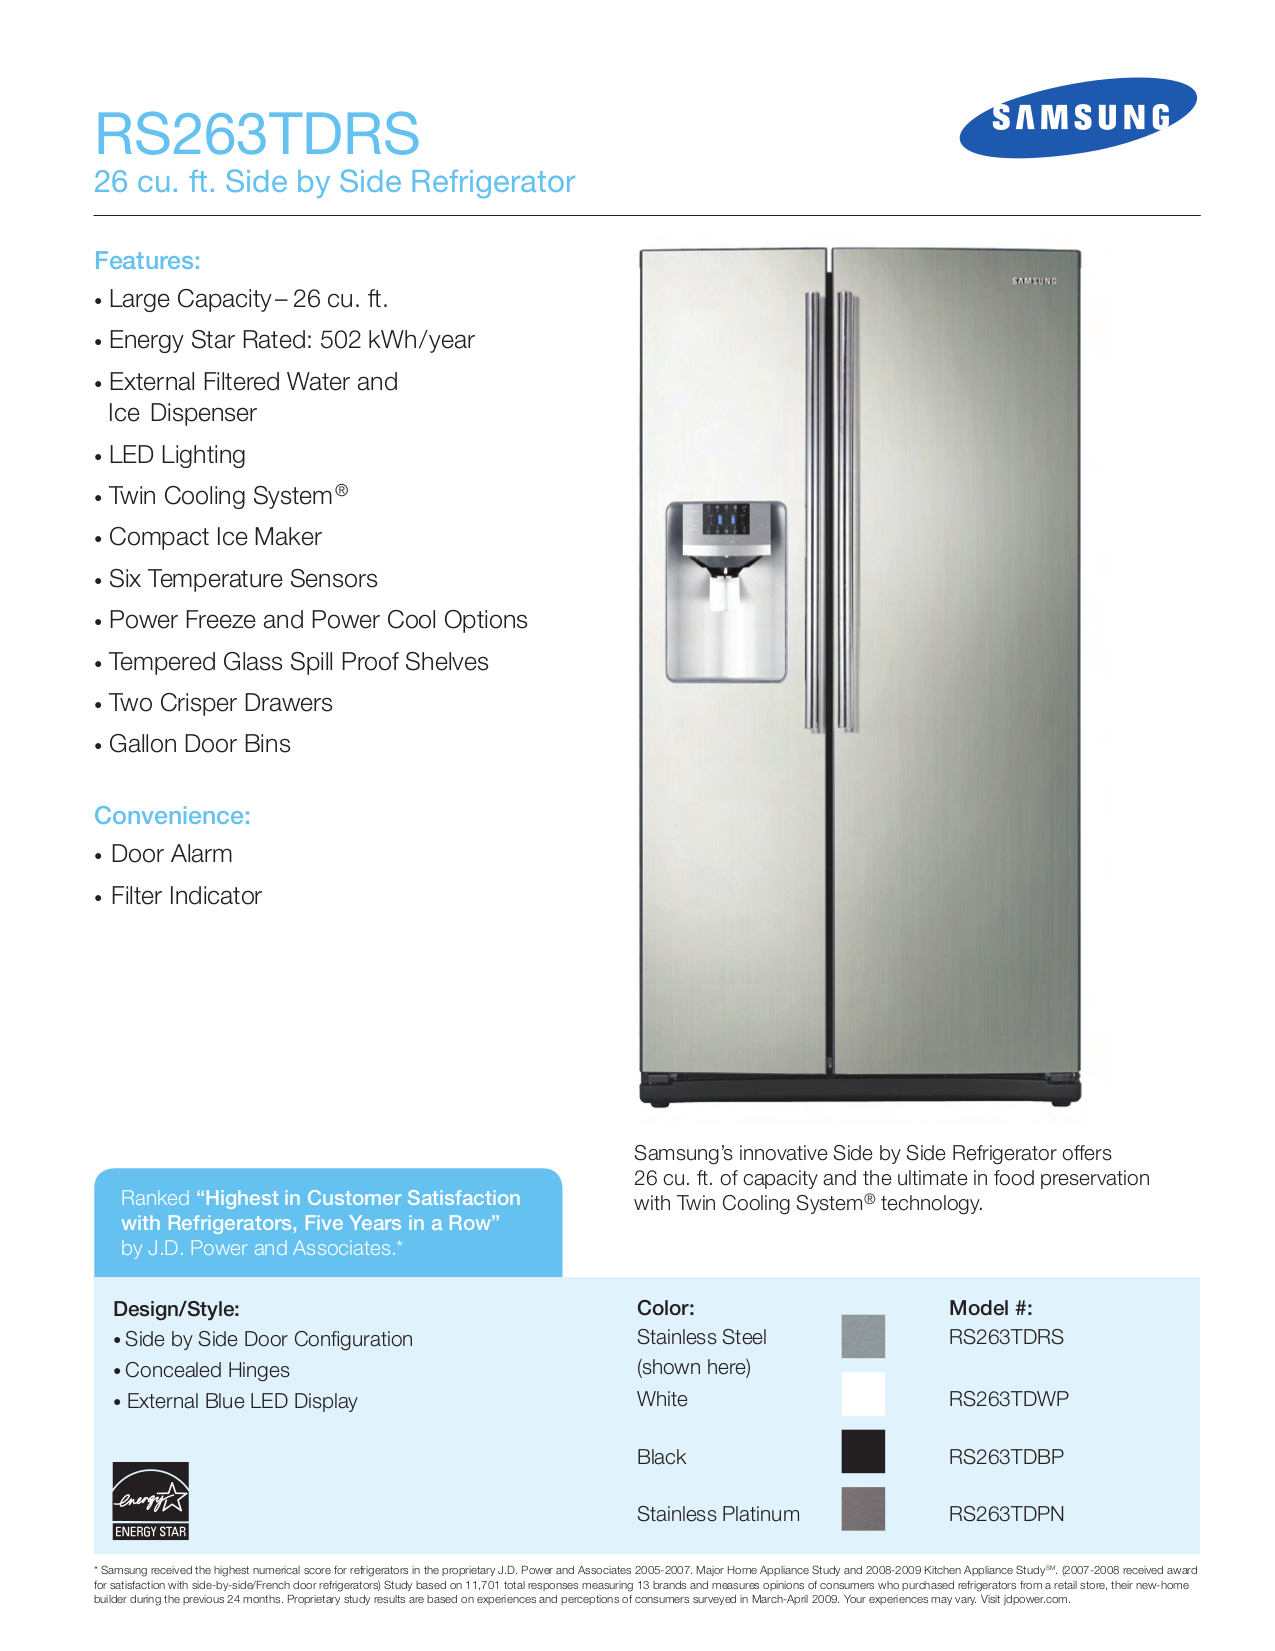 Download Free Pdf For Samsung Rs263td Refrigerator Manual